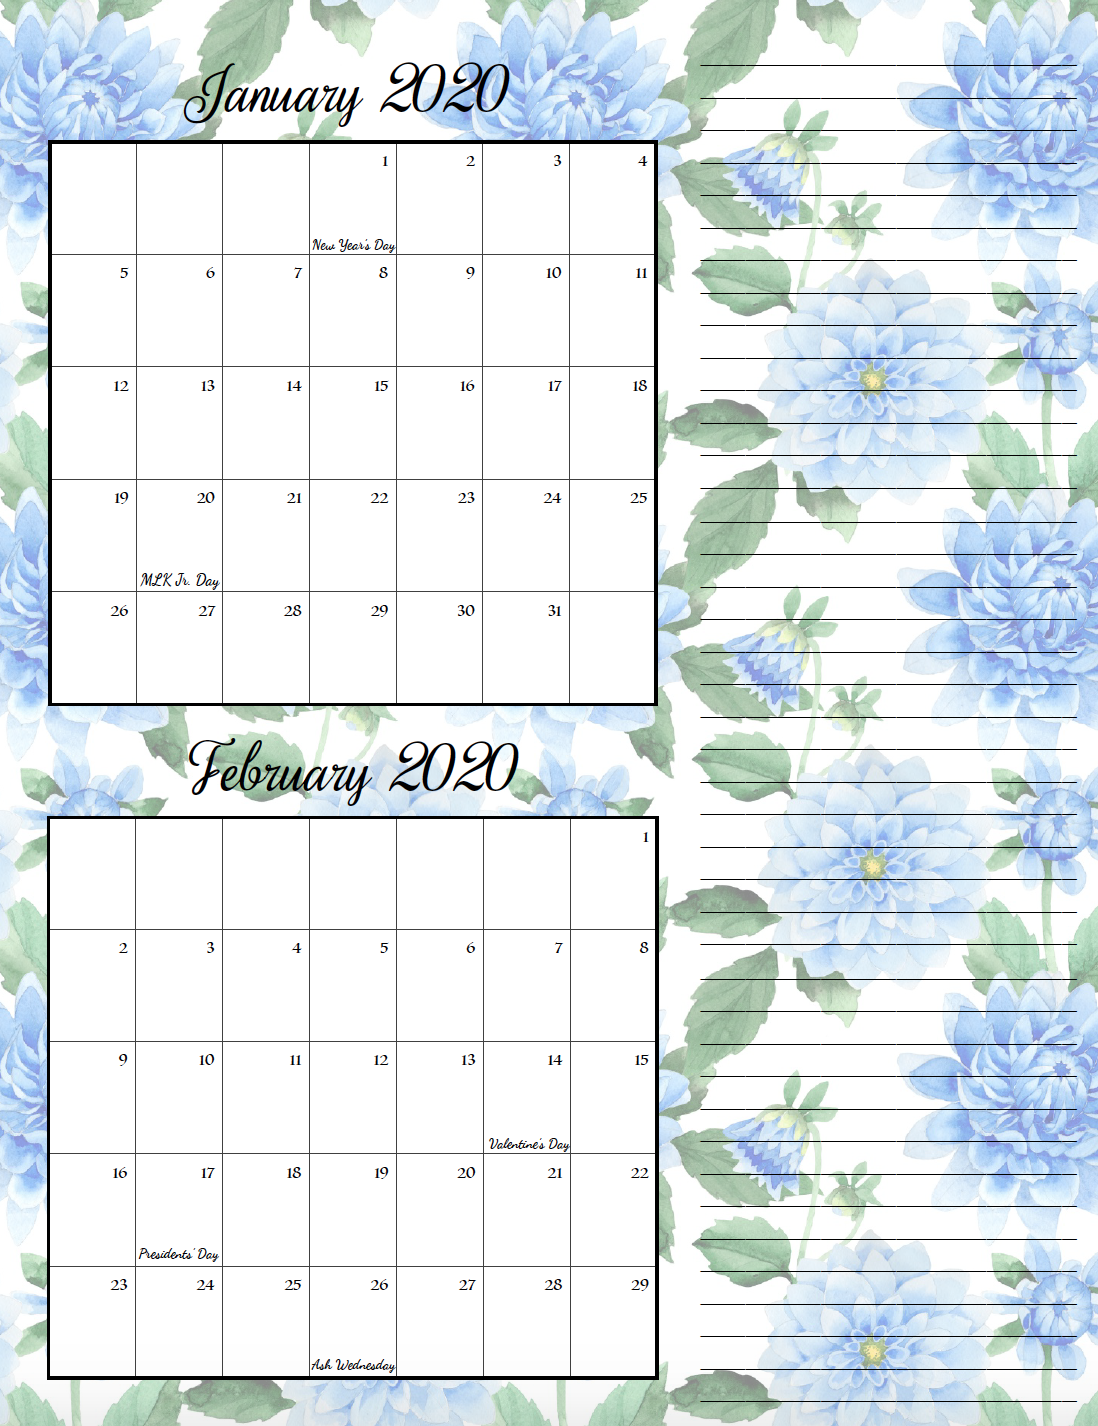 Floral theme January/February bimonthly calendar.